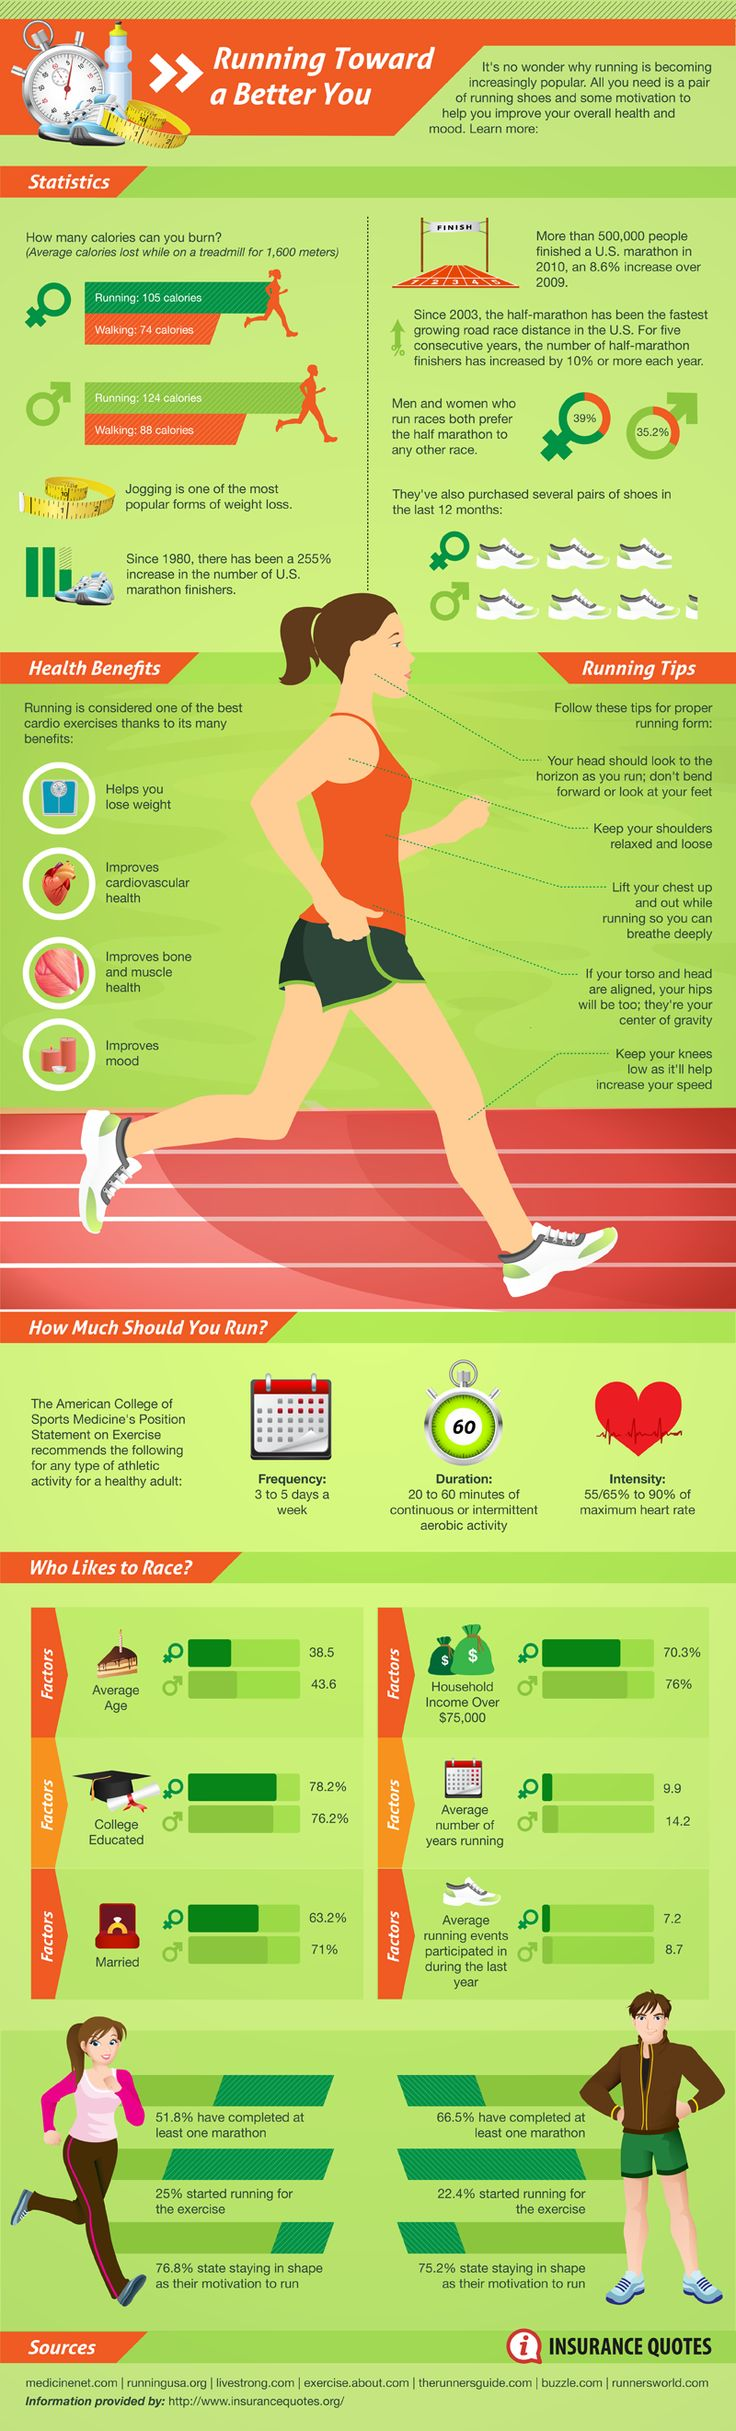 Running is an exercise that improves a persons mental and physical state. Jogging is considered one of the most popular forms of weight loss. Here is a list of running slogans used by others that can be inspirational to keep you motivated throughout your running routine. All it takes is all you've got. Date a […]